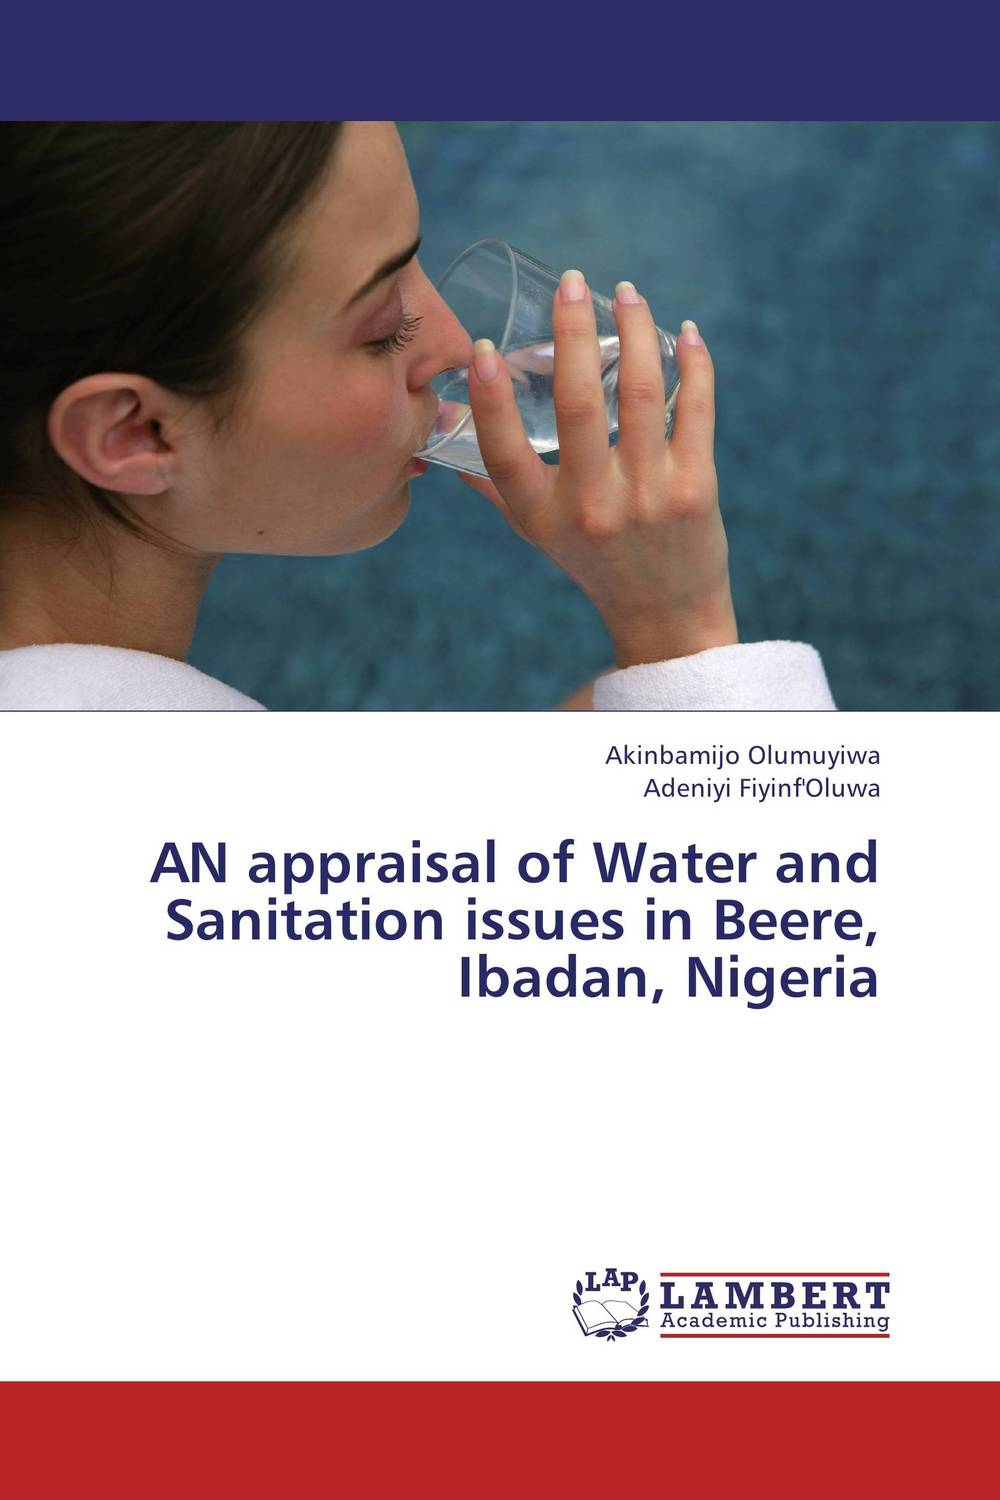 все цены на AN appraisal of Water and Sanitation issues in Beere, Ibadan, Nigeria